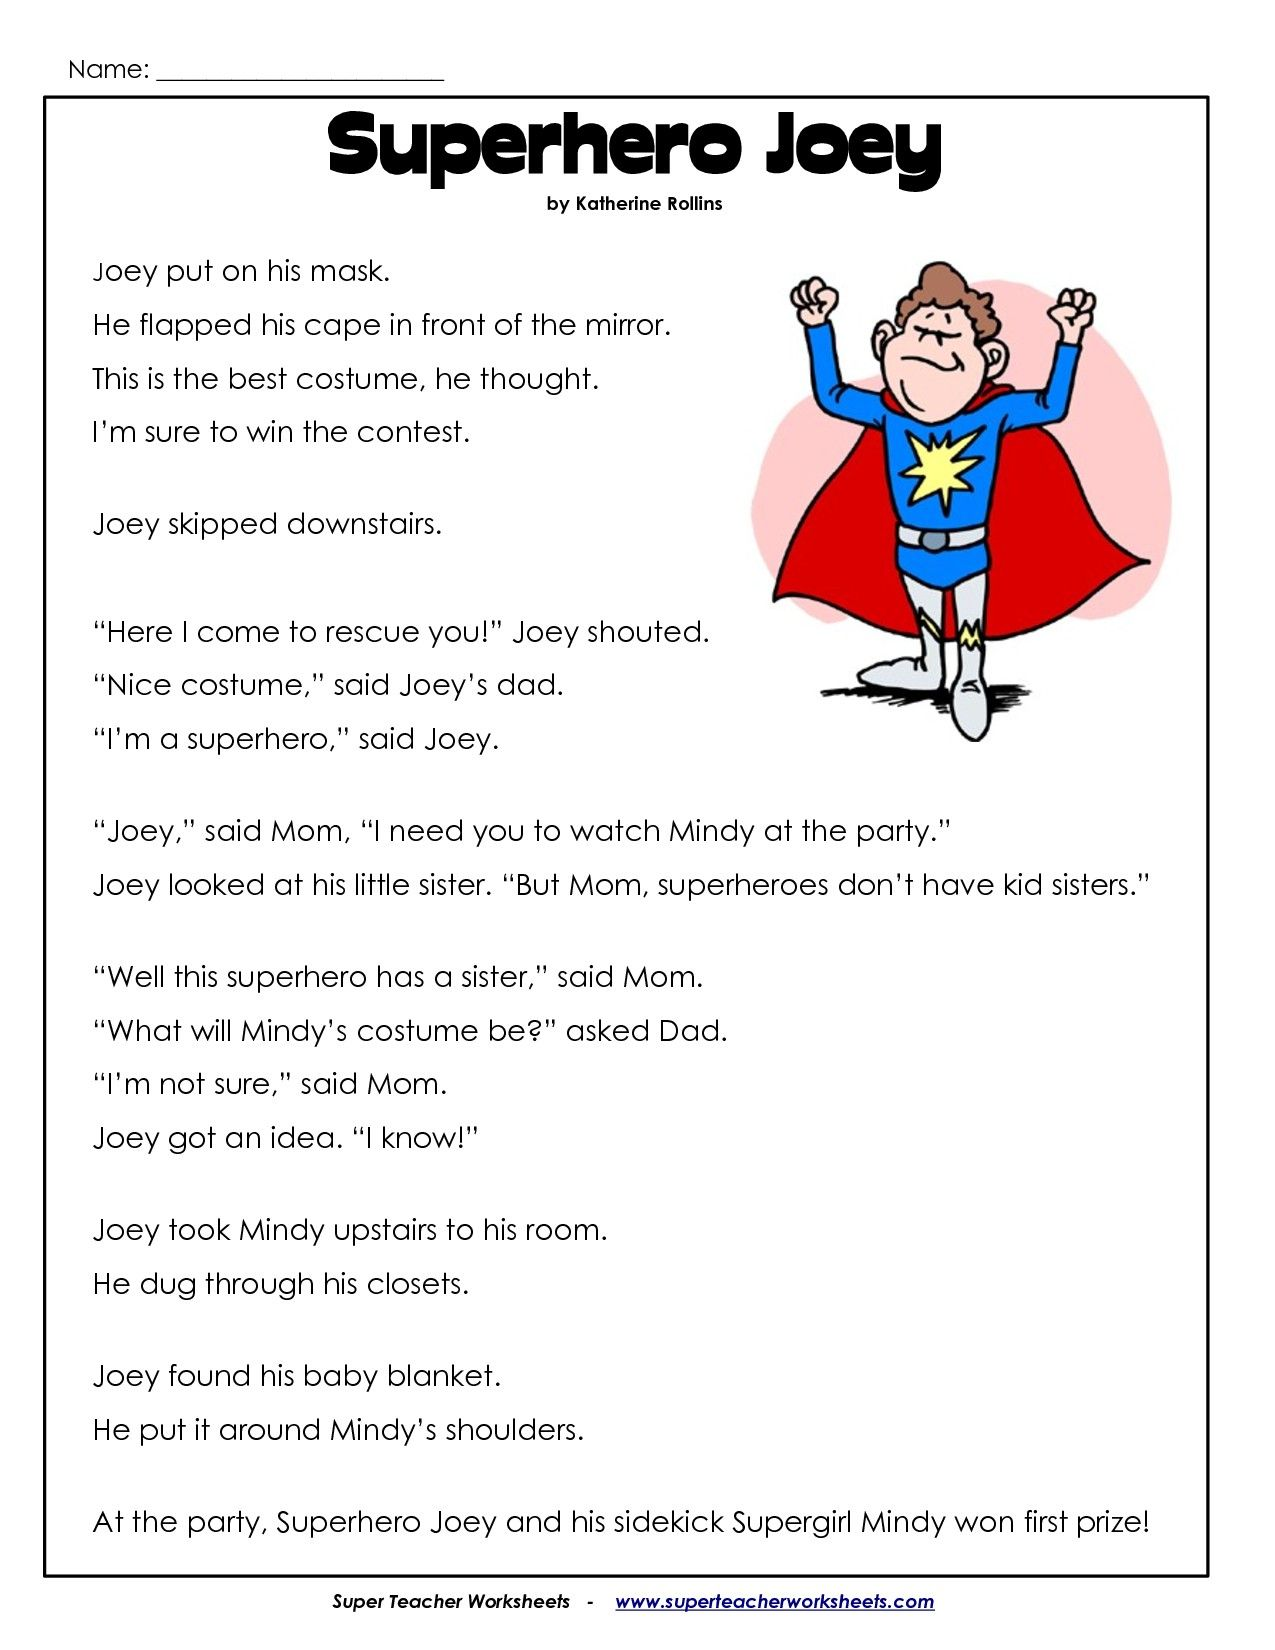 worksheet Free Printable Reading Worksheets free printable reading comprehension worksheets for 1st grade 1000 images about 2nd grade